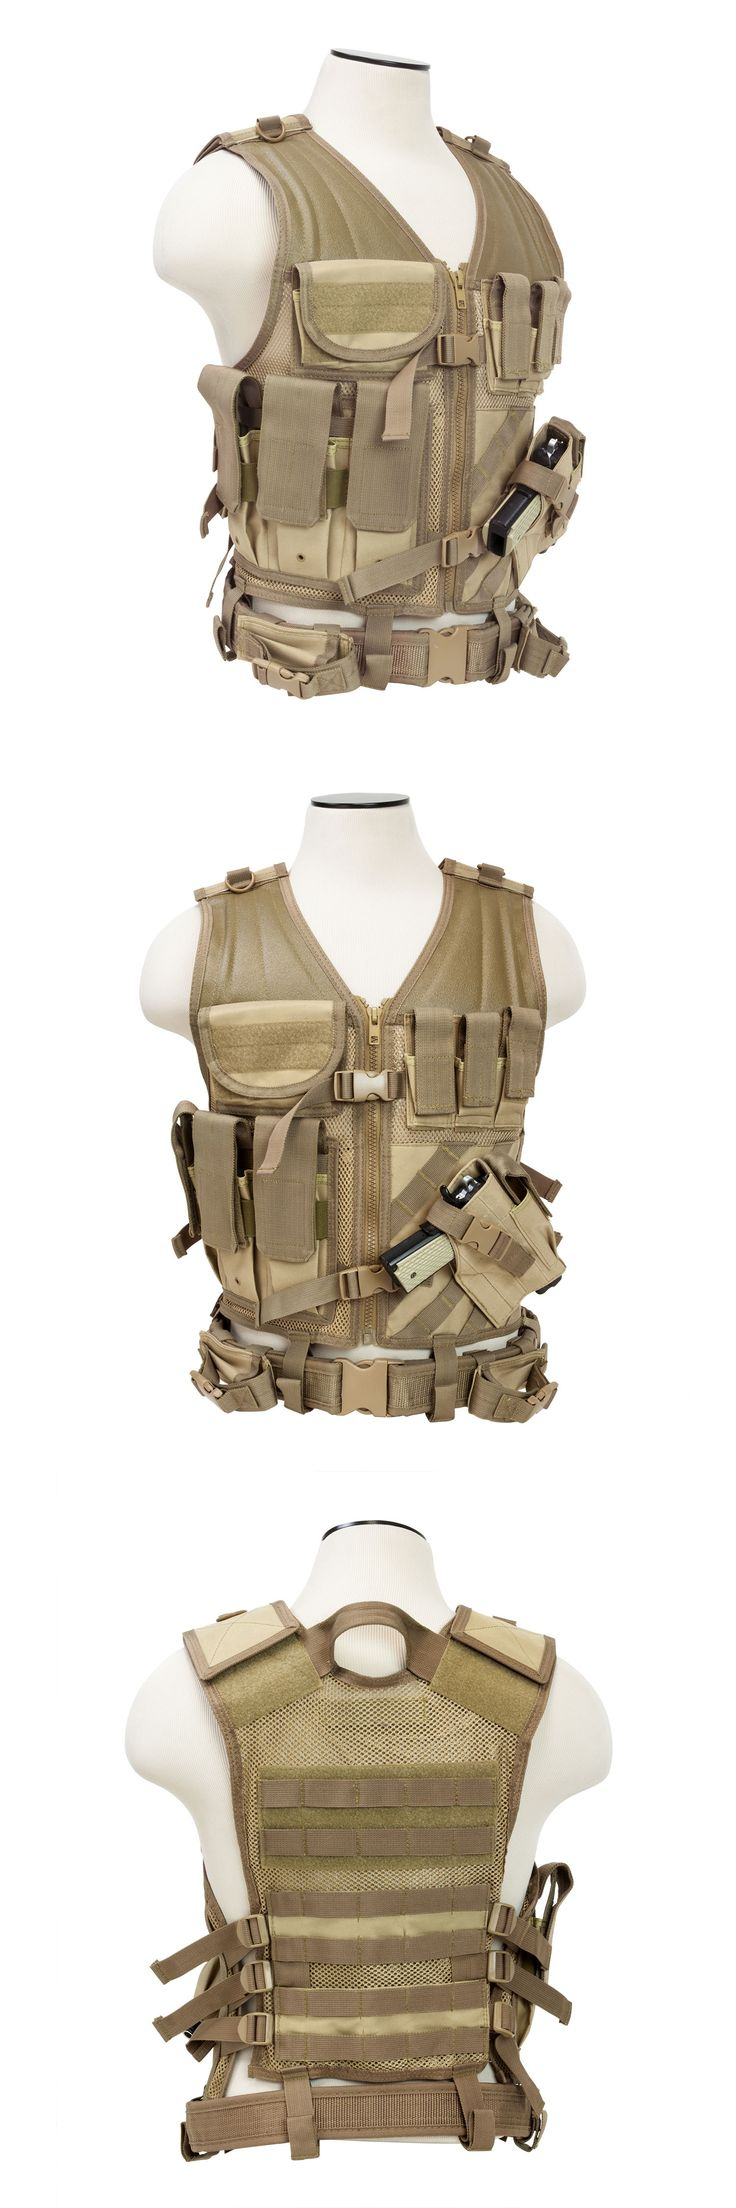 Chest Rigs and Tactical Vests 177891: Ncstar Ctv2916t Pvc Military Tactical Heavy Duty Vest W Pistol Holster Tan -> BUY IT NOW ONLY: $35.95 on eBay!